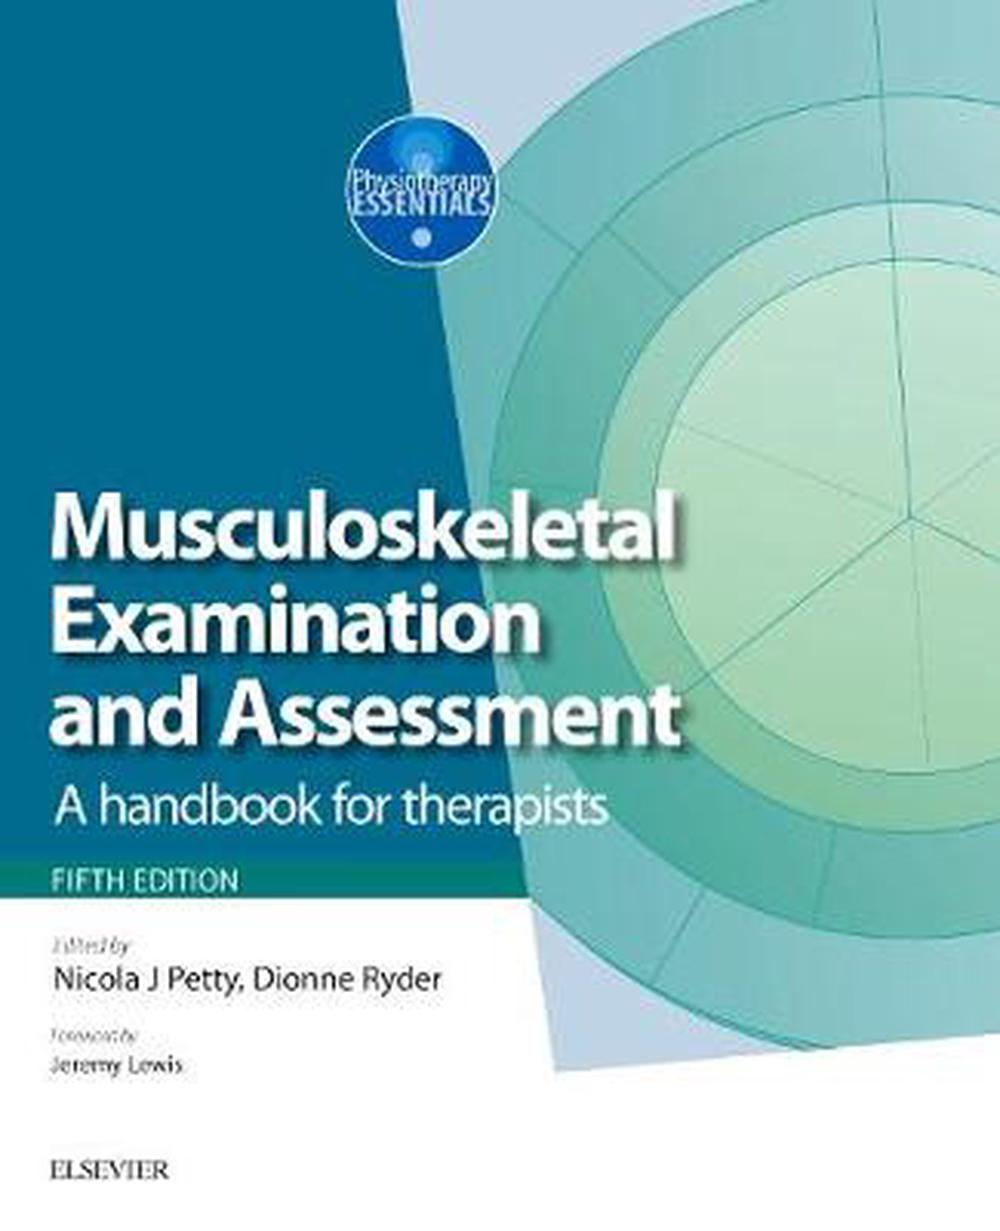 Musculoskeletal Examination and Assessment - Volume 1, 5th Edition